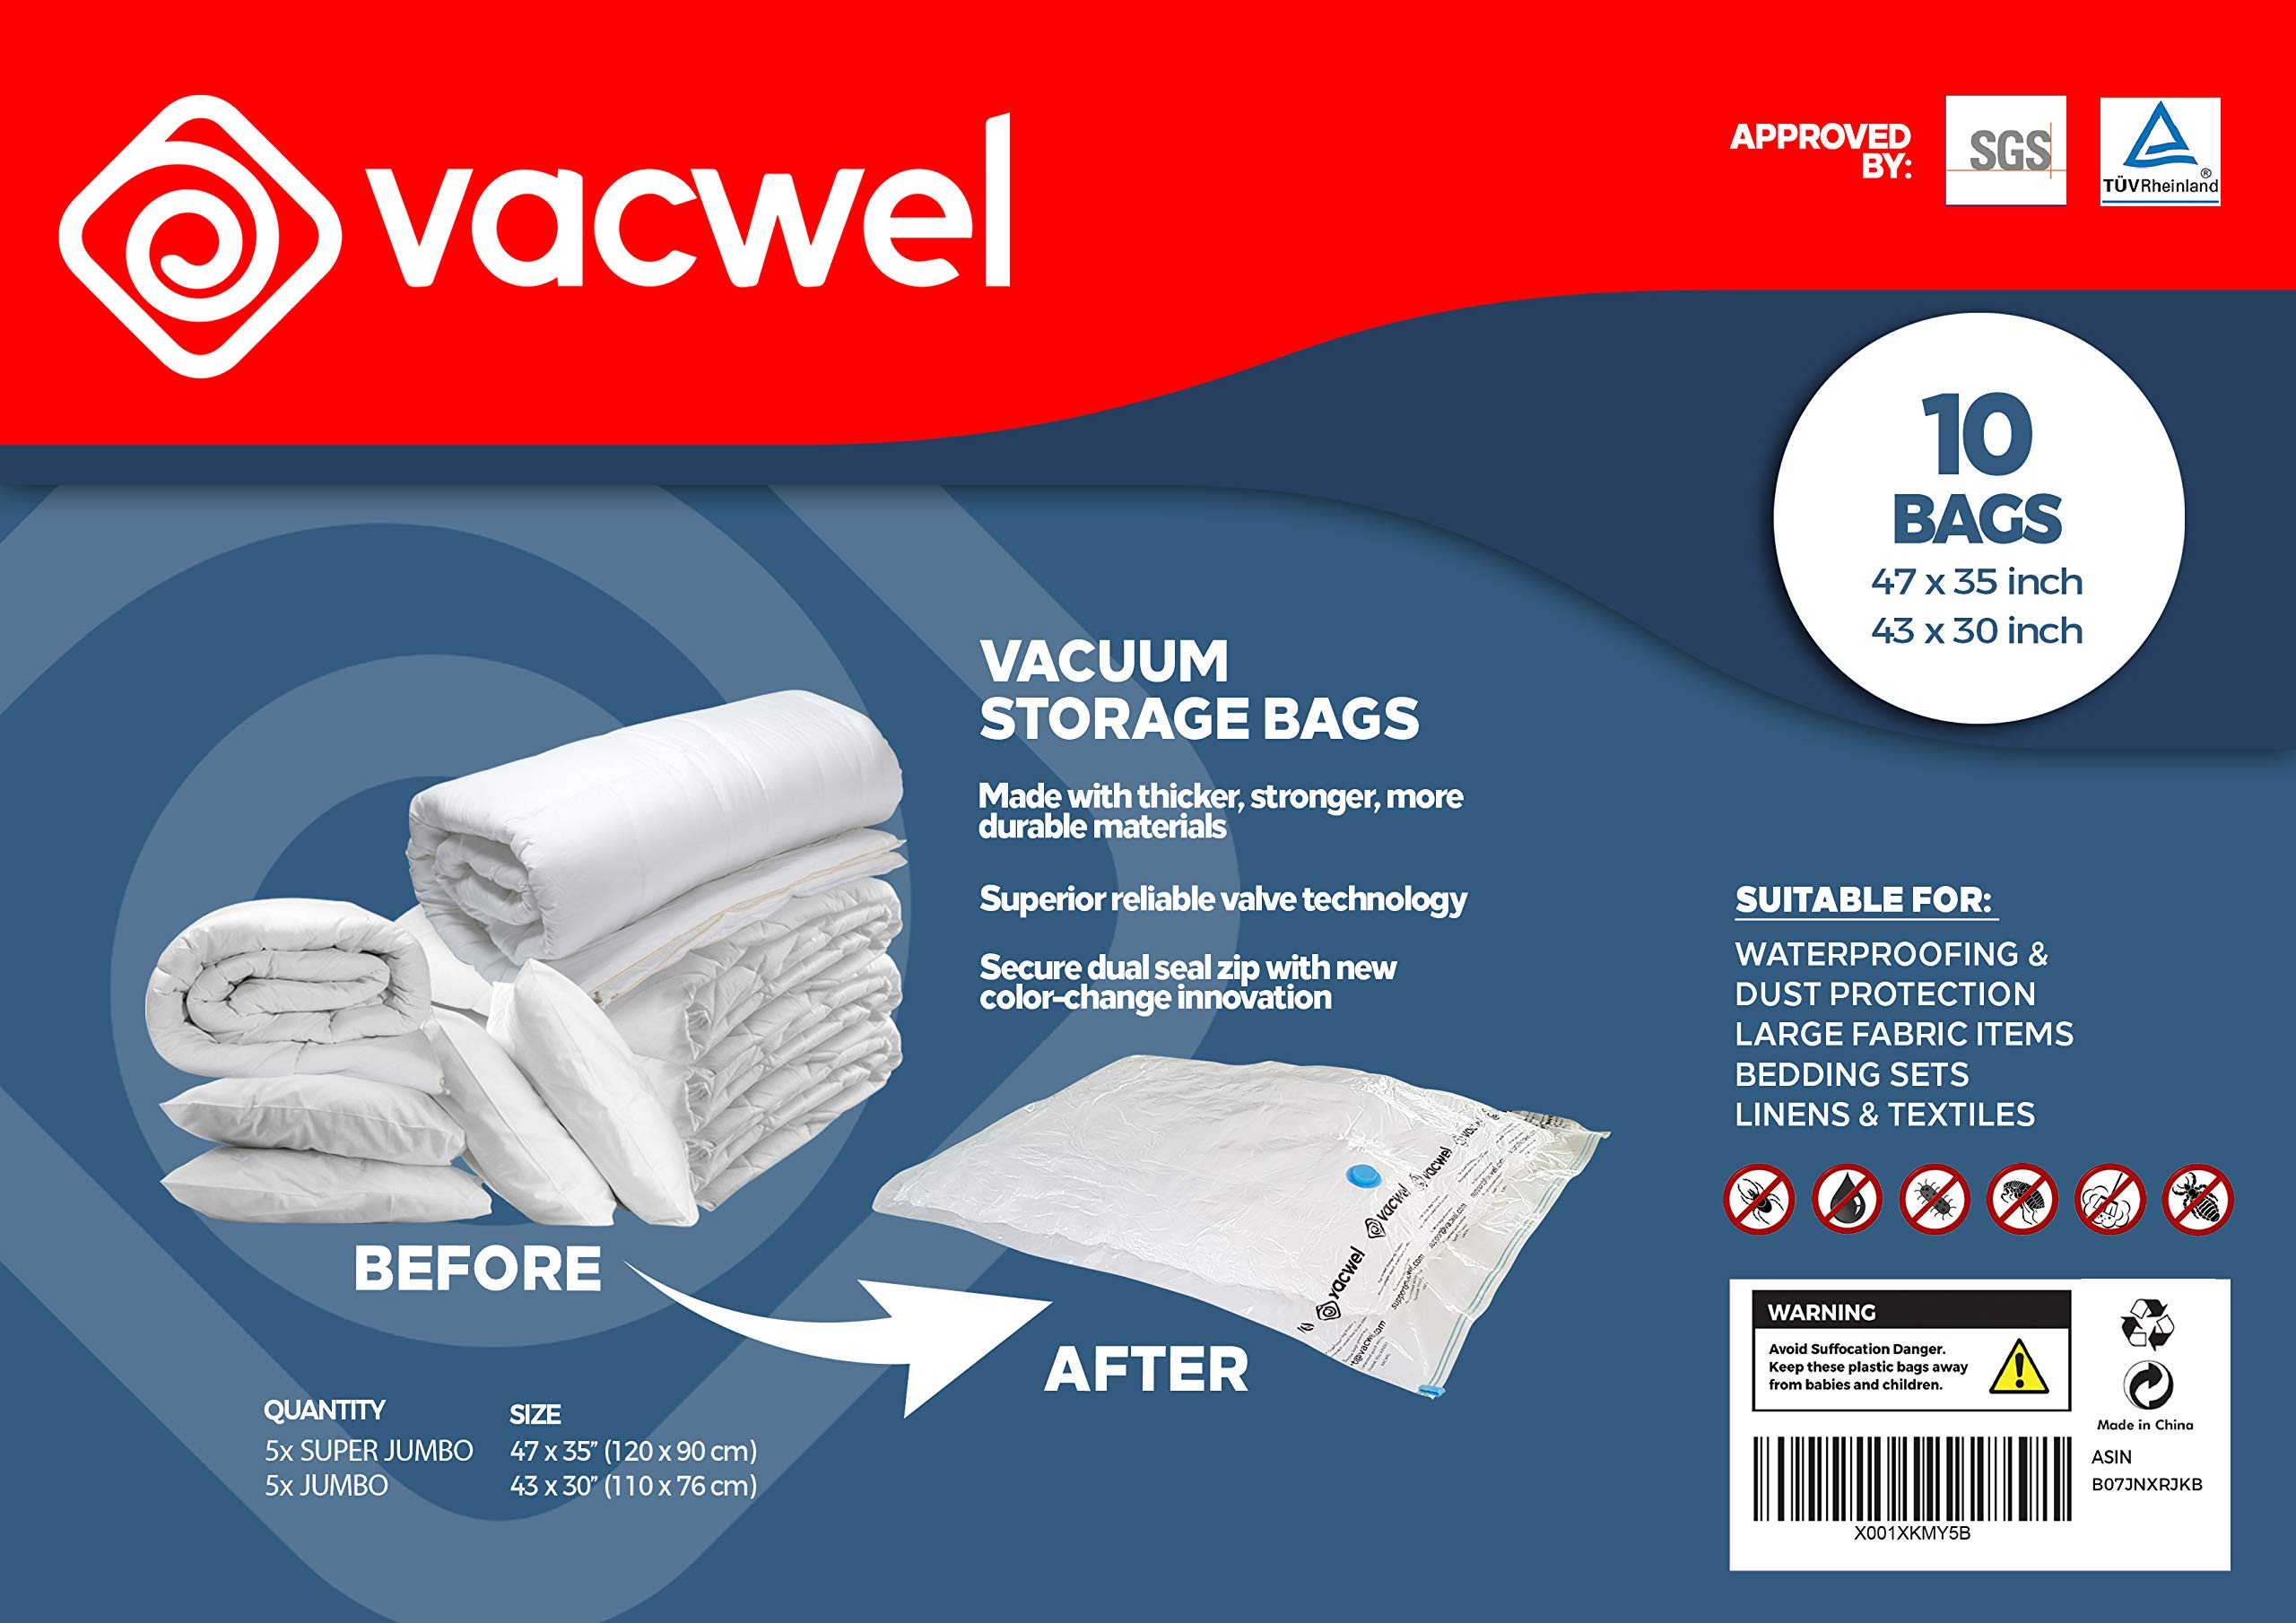 Vacwel Vacuum Space Storage Bags XXL Jumbo Size for Large Vacuum Storage Items, 10 Space Saver Bags- 5X 47 x 35 inch + 5X 43 x 30 inch, Commercial-Grade Quality by Vacwel